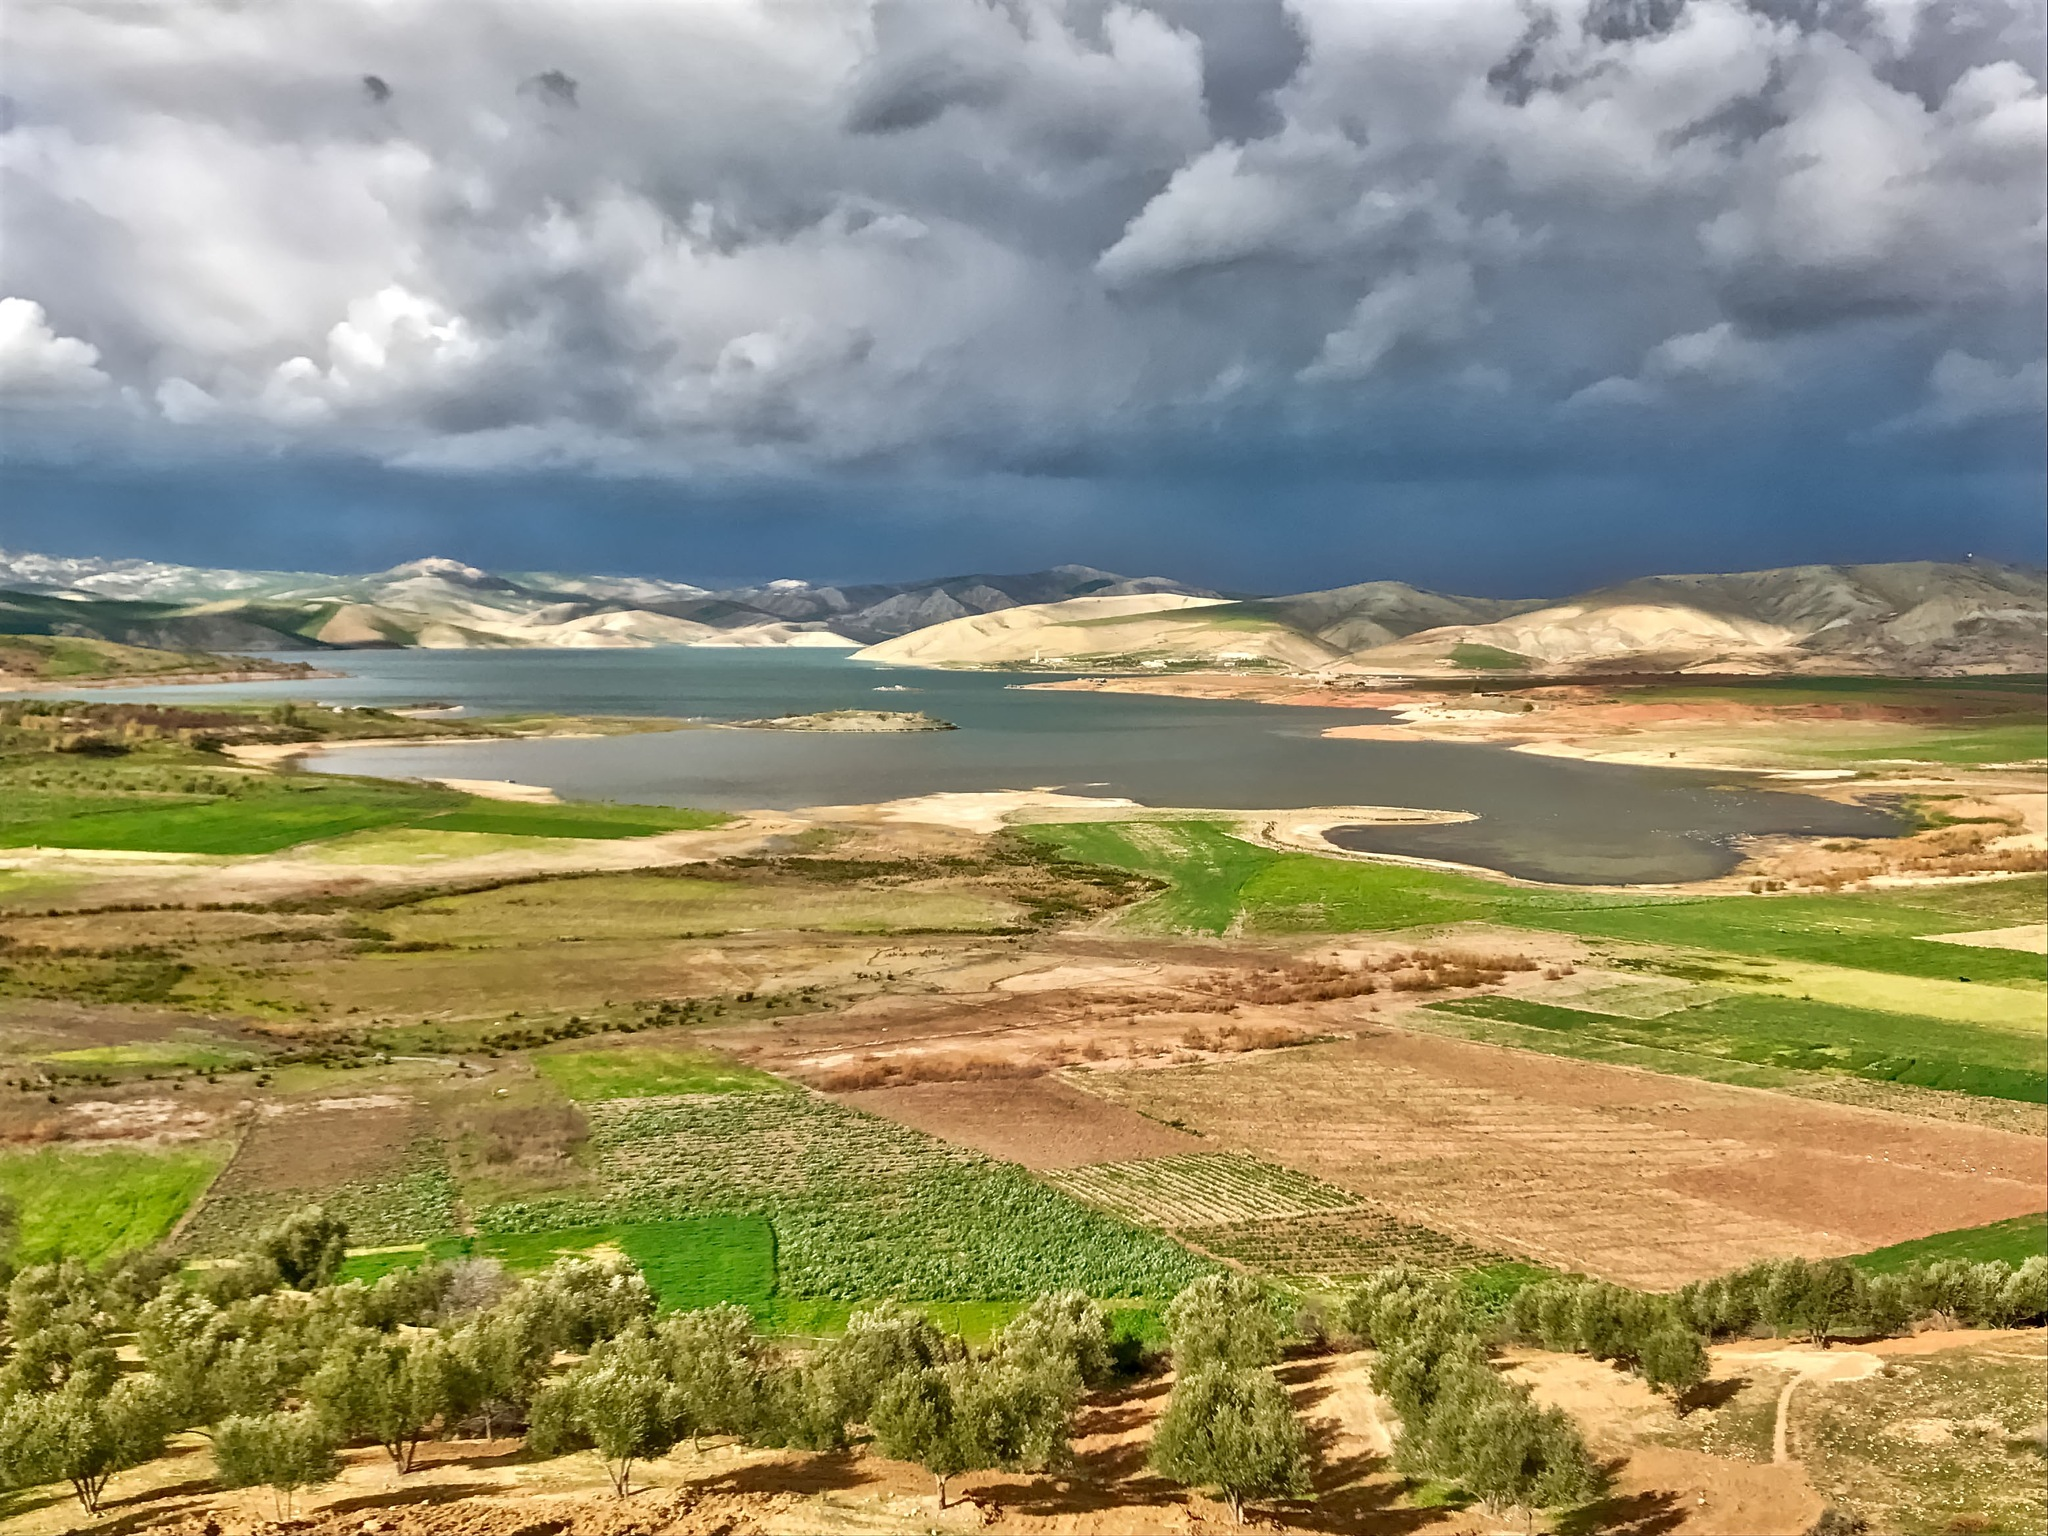 Landscape at the barrier lake Sidi Chahed in Morocco. by Erwin Widmer